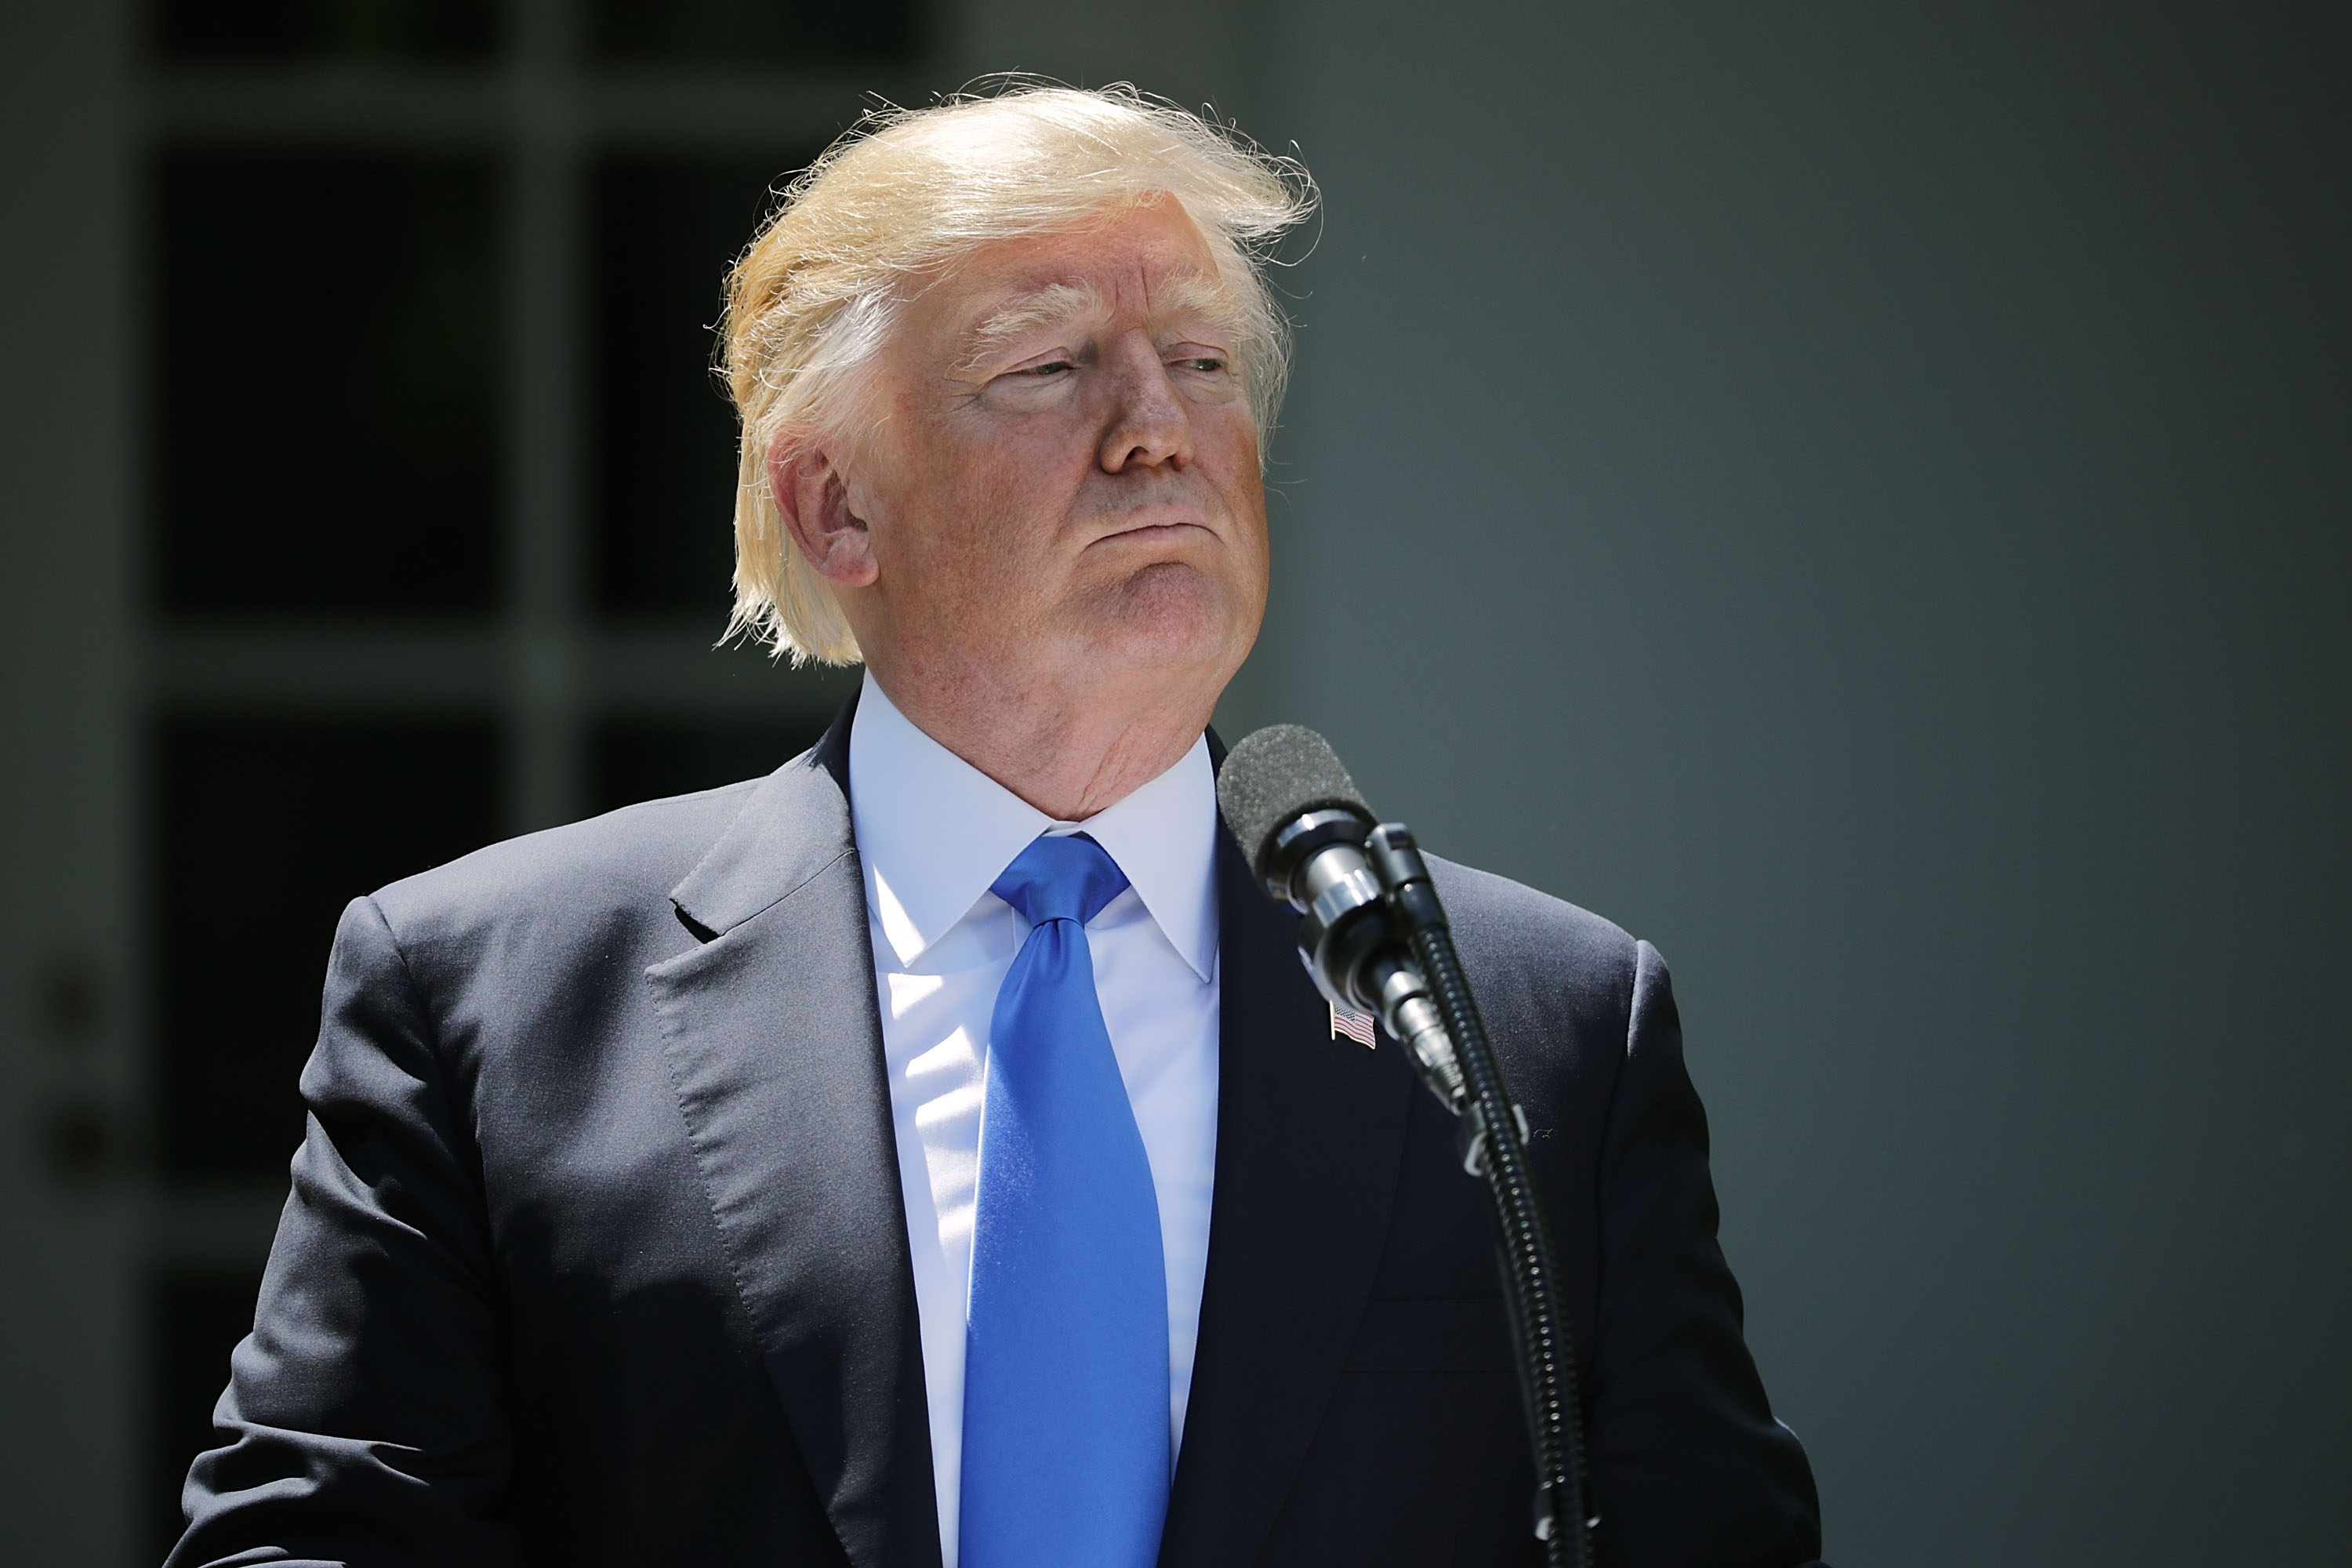 President Donald Trump at the White House on June 9, 2017.